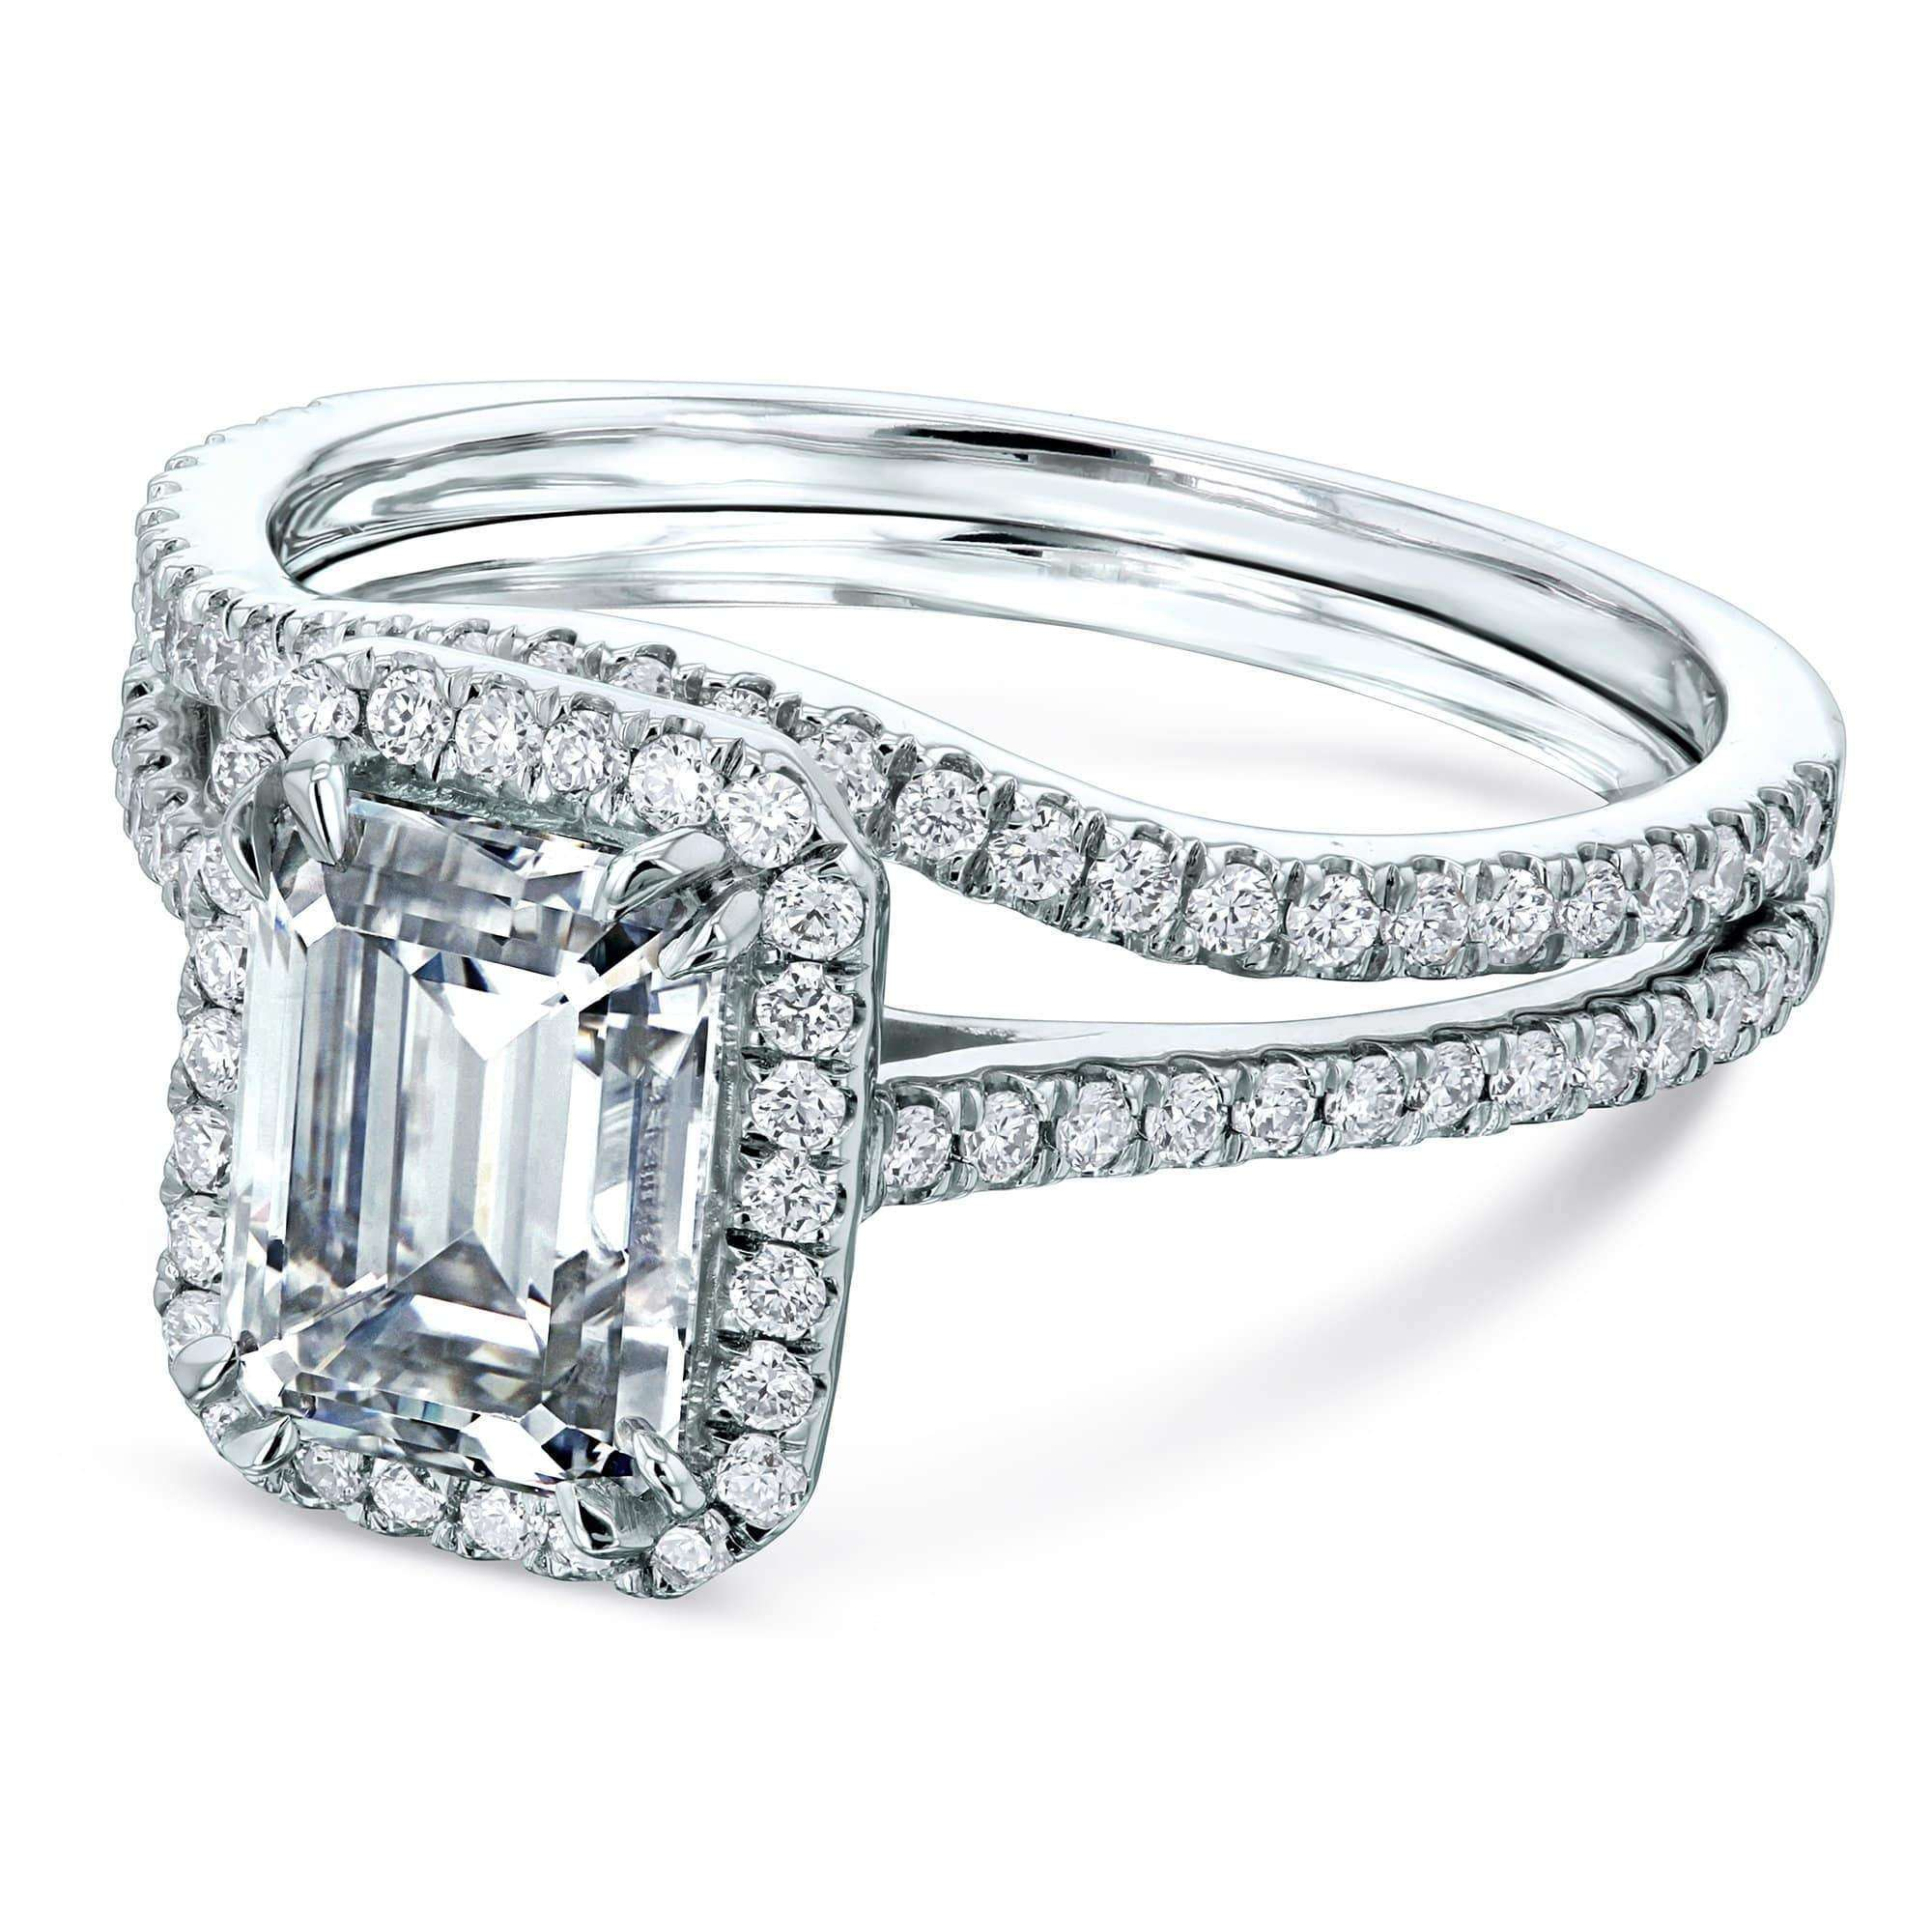 Reviews 1.75ct Emerald Forever One Moissanite Halo Bridal Set - white-gold 4.0